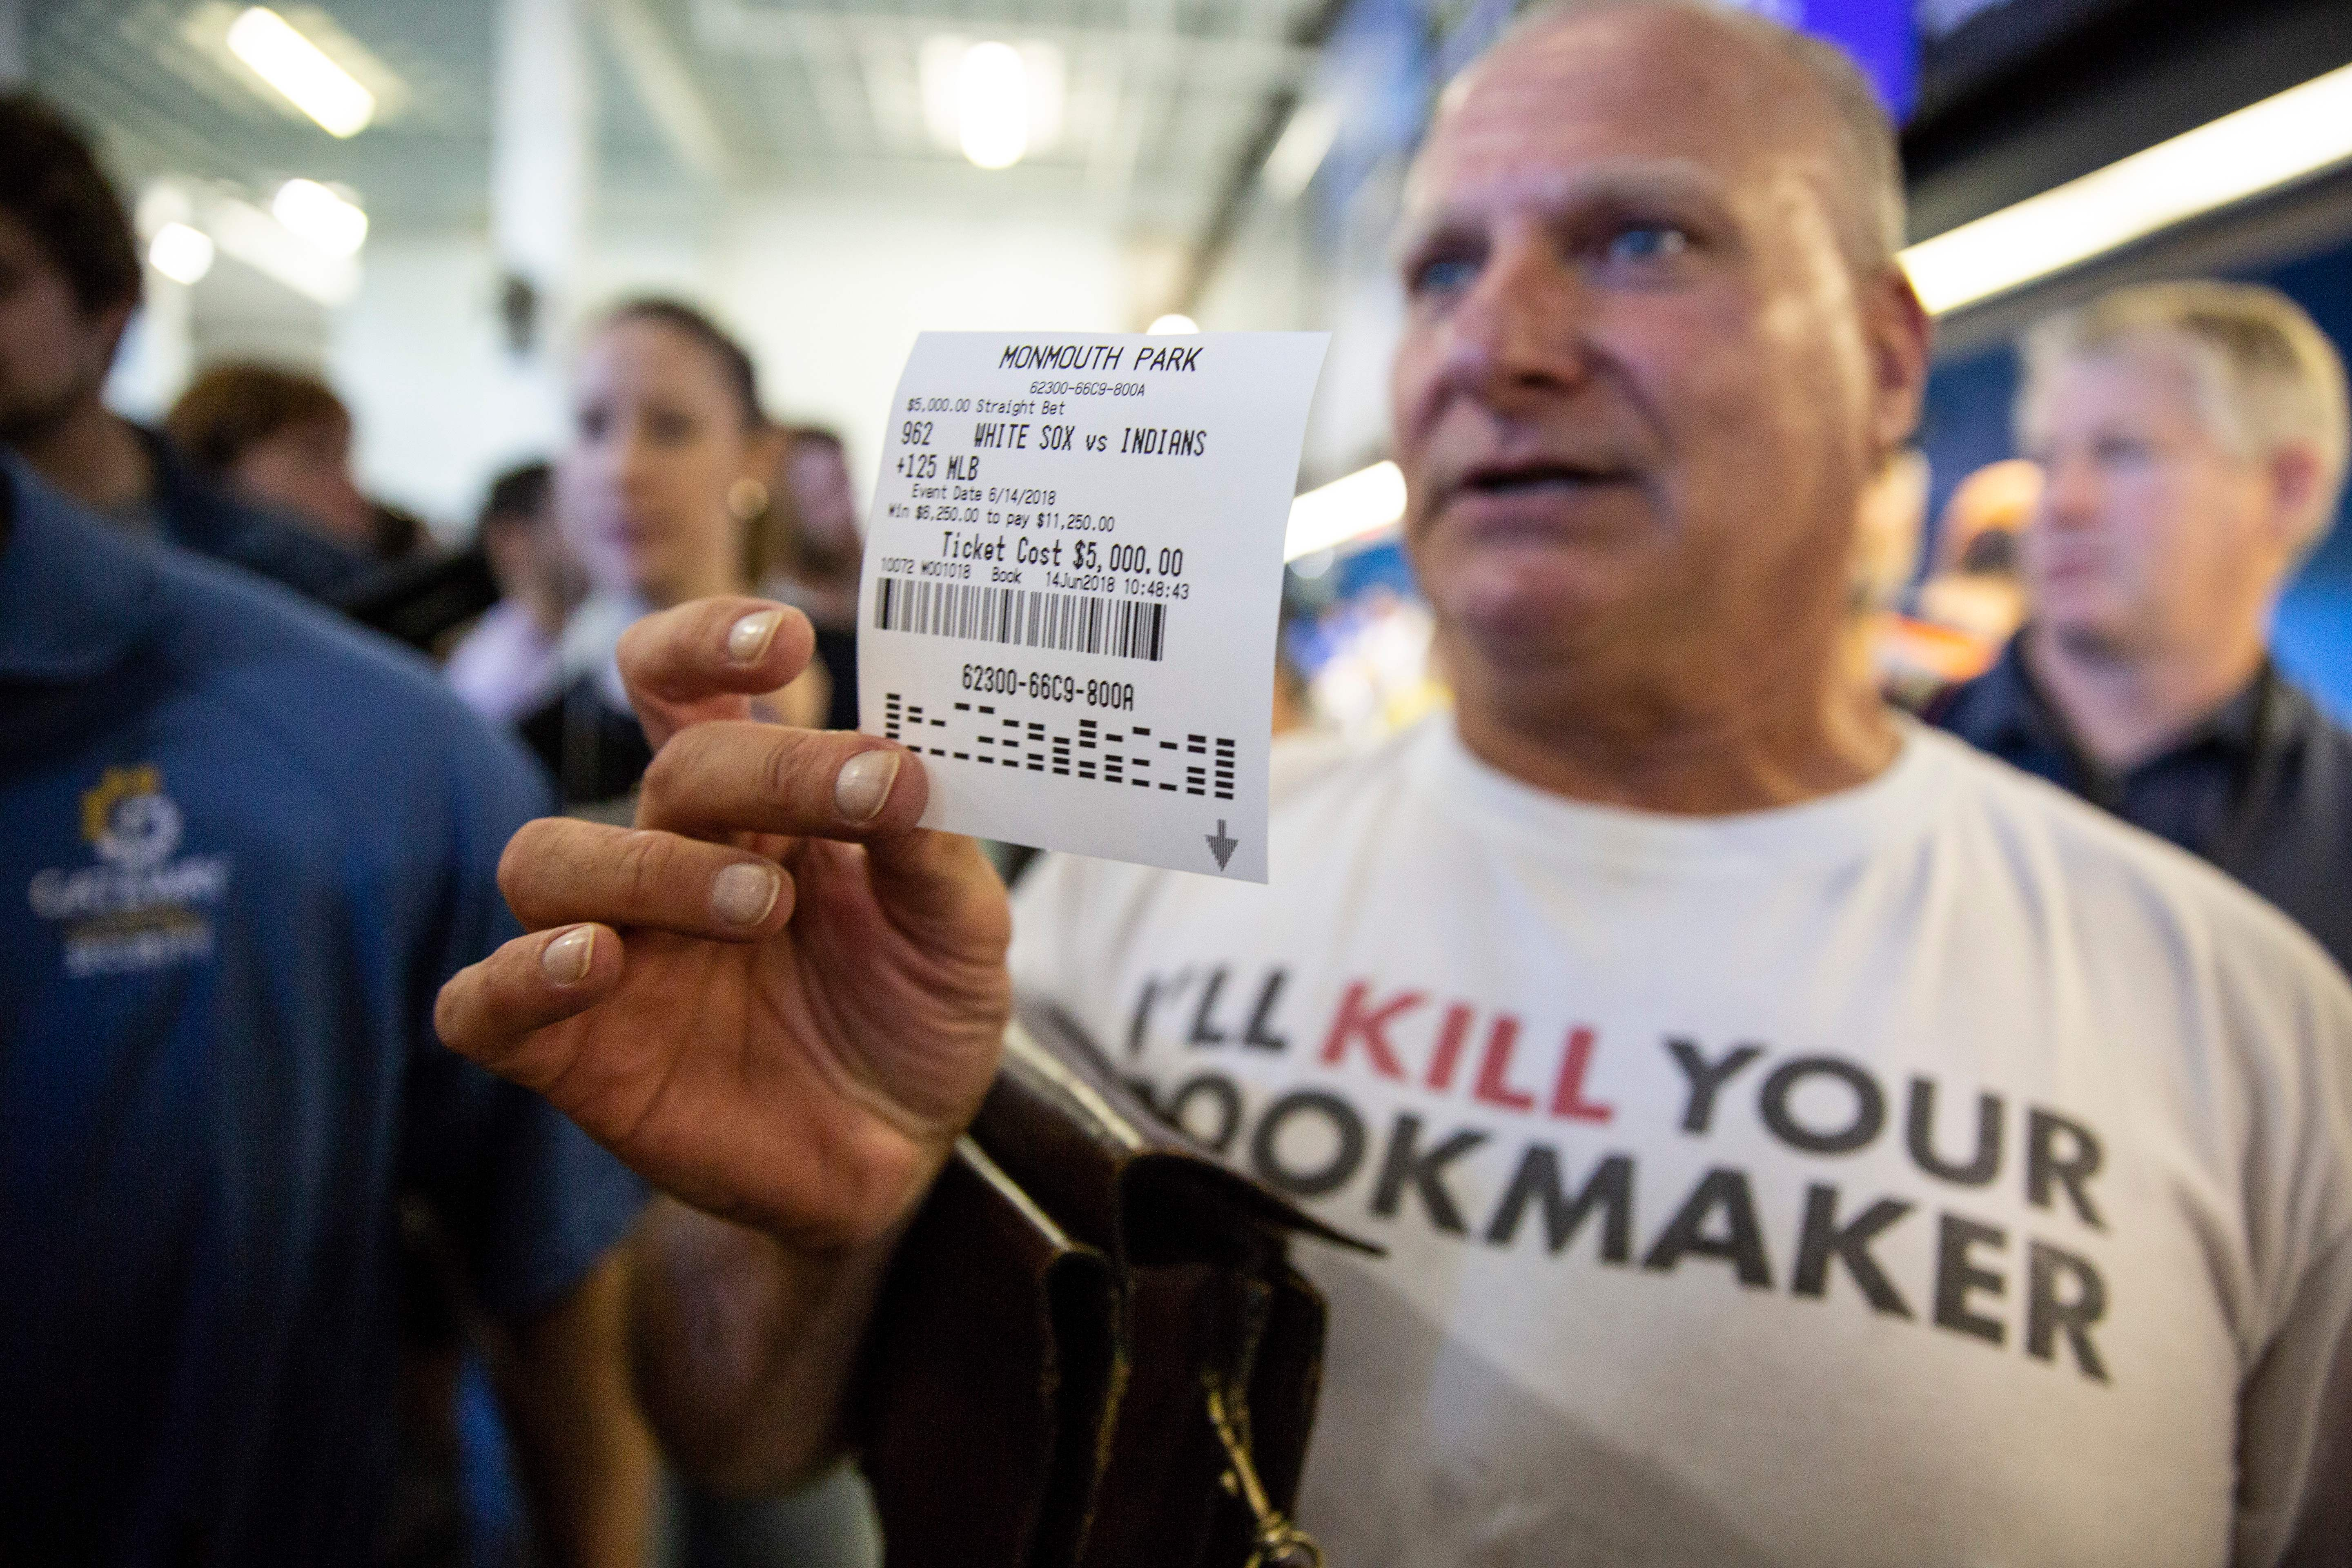 Professional odds-maker Stu Feiner holds up a betting slip for $5000 USD on June 14, 2018 after placing a bet at the Monmouth Park Sports Book on the first day of legal sports betting in the state, in Monmouth Park in Oceanport, New Jersey. - New Jersey Gov. Phil Murphy on June 11, 2018 signed a law that authorized legal sports betting in New Jersey, ending a nearly decade-long saga that included a multimillion court battle against the nation's top sports leagues and a landmark ruling from the nation's highest court. (Photo by DOMINICK REUTER / AFP) (Photo credit should read DOMINICK REUTER/AFP/Getty Images)